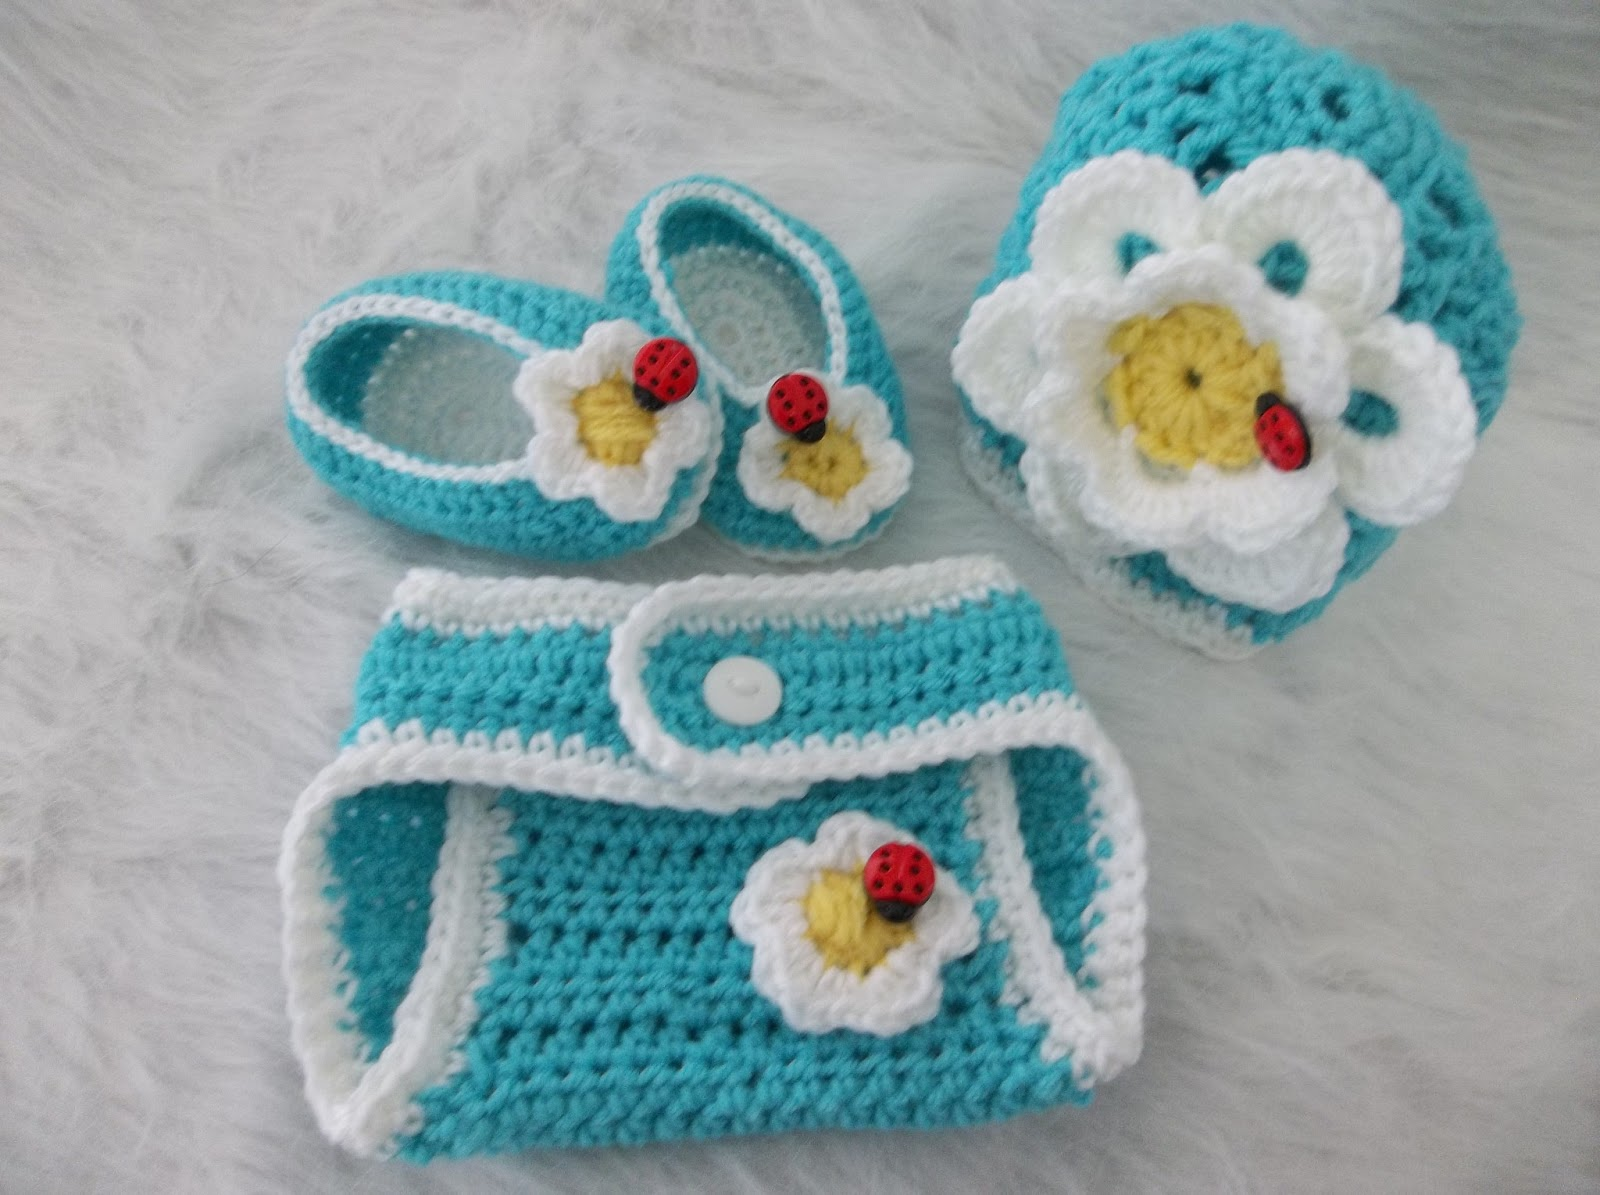 22 Crochet Diaper Cover Patterns - The Funky Stitch